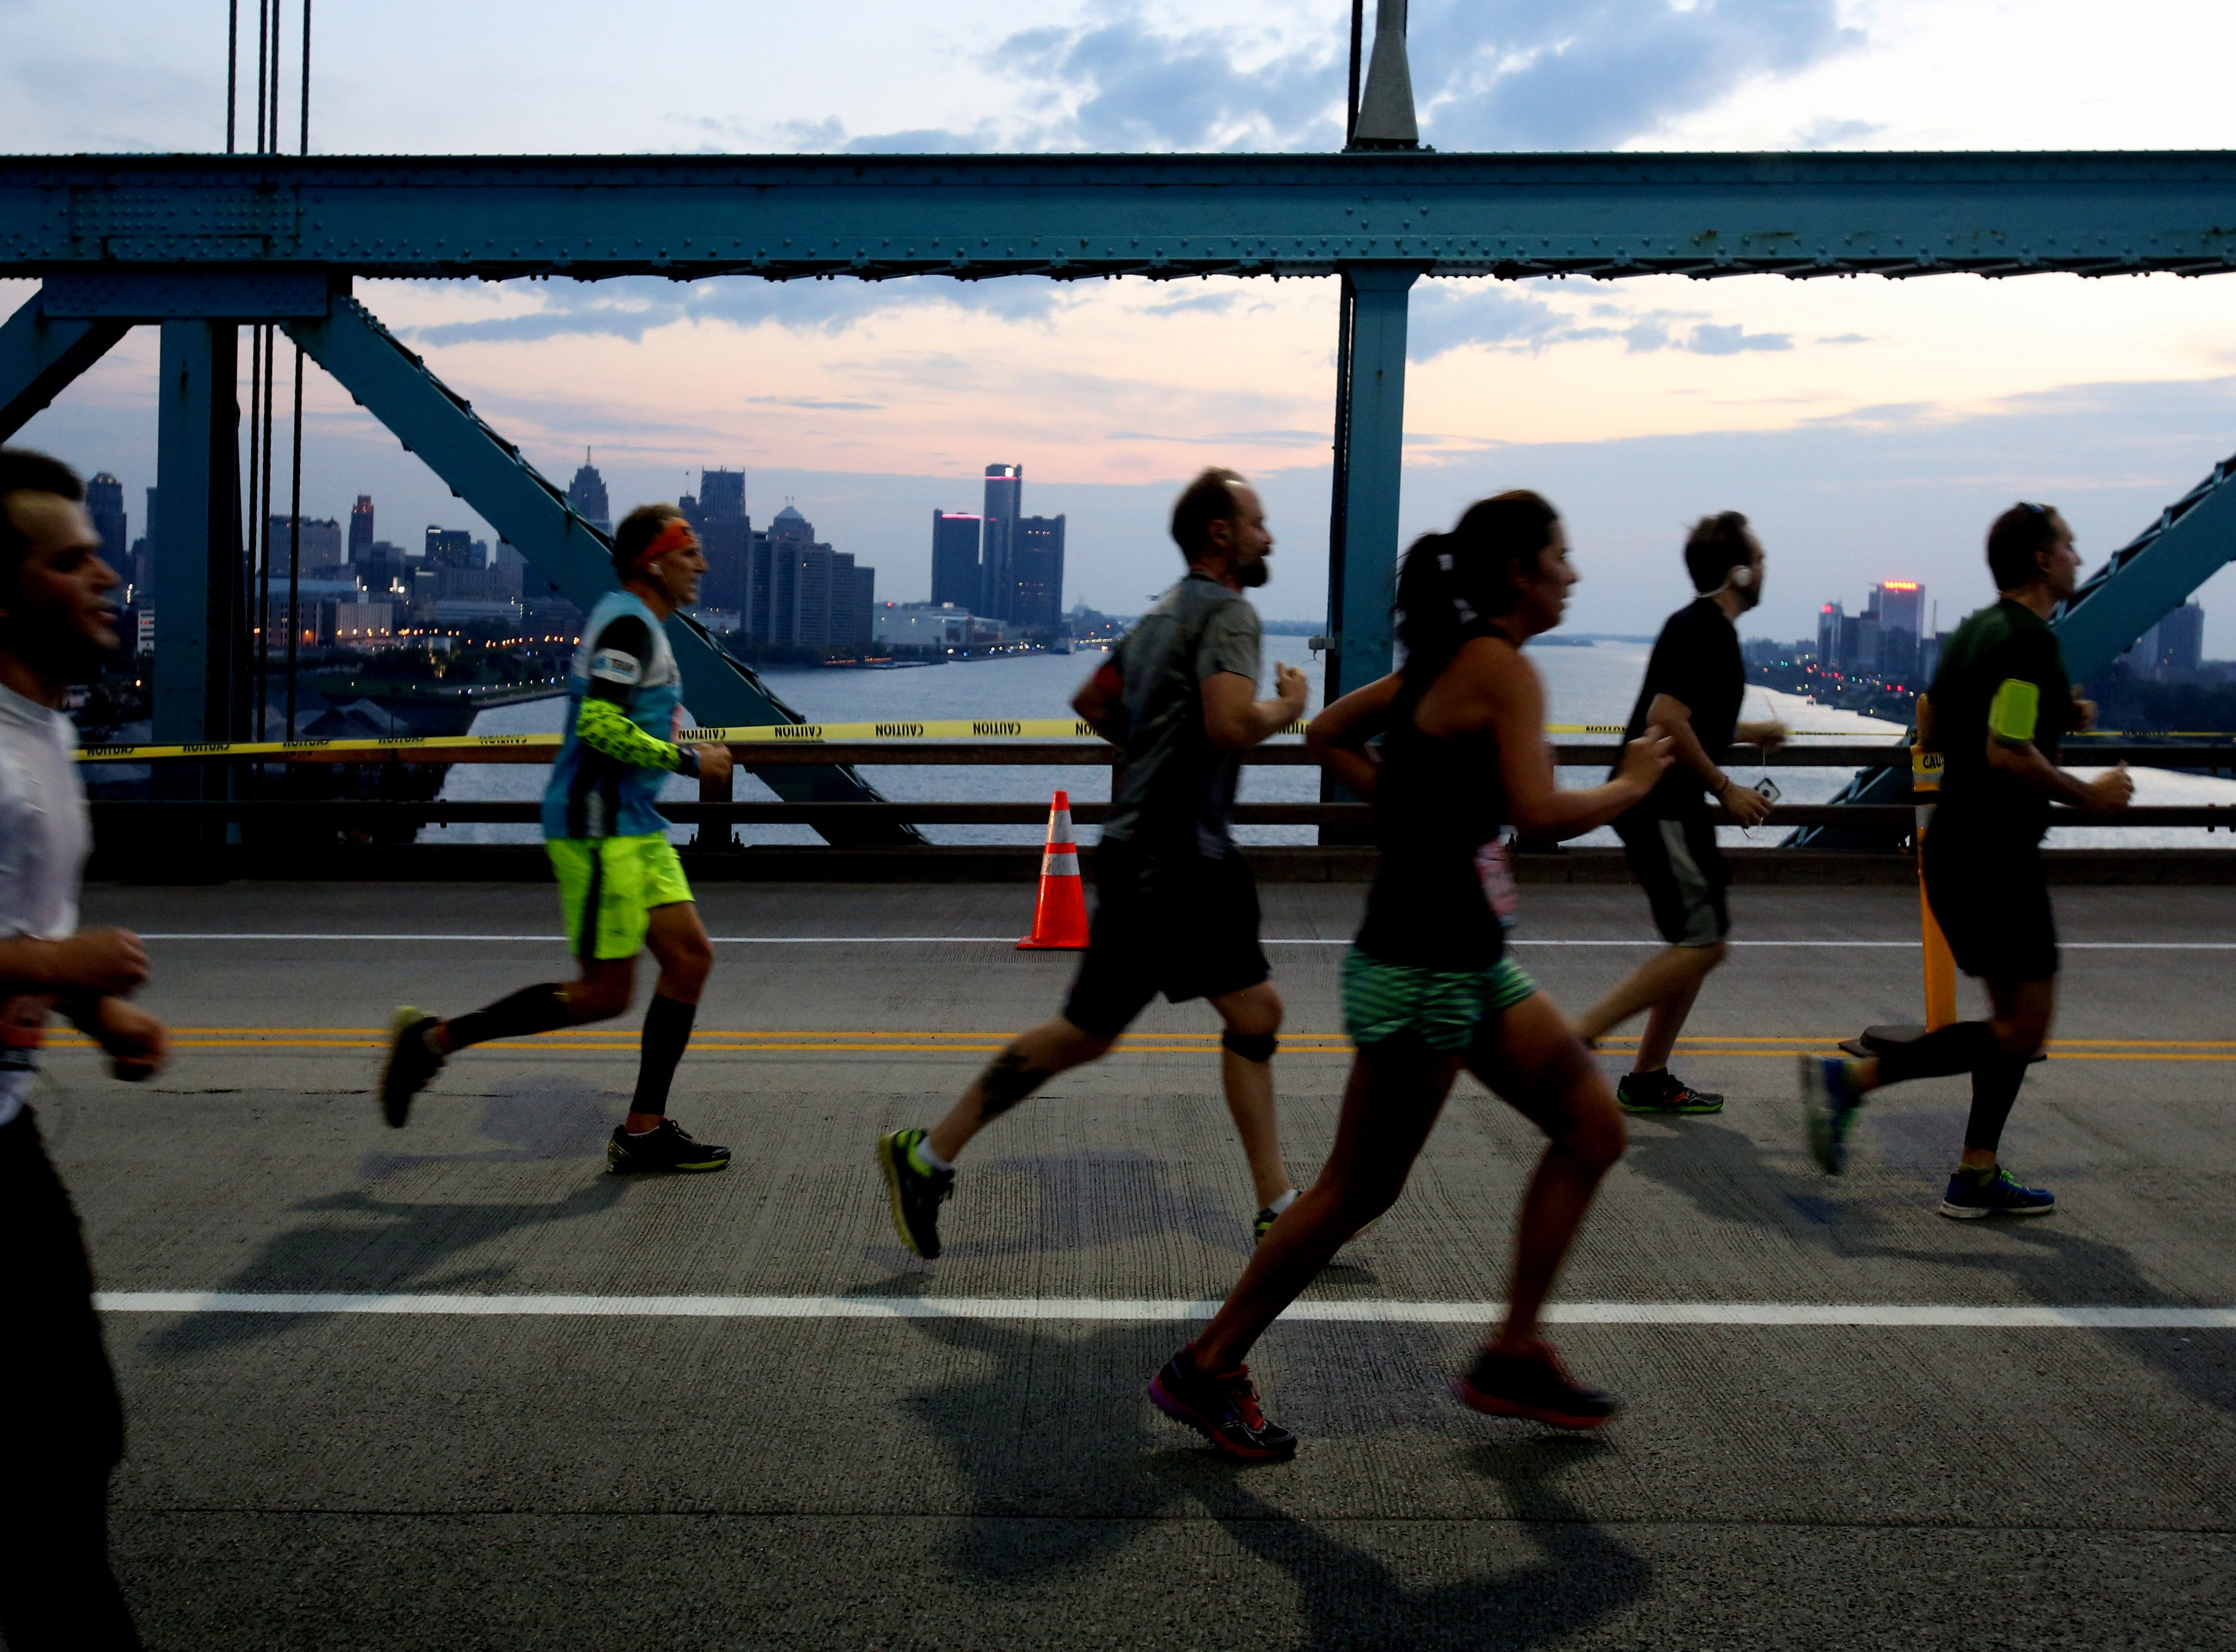 With the downtown Detroit skyline in the background, runners head towards Windsor, Canada on the Ambassador Bridge during the 39th Annual Detroit Free Press/Talmer Bank Marathon in Detroit, Michigan on Sunday, Oct 16, 2016.